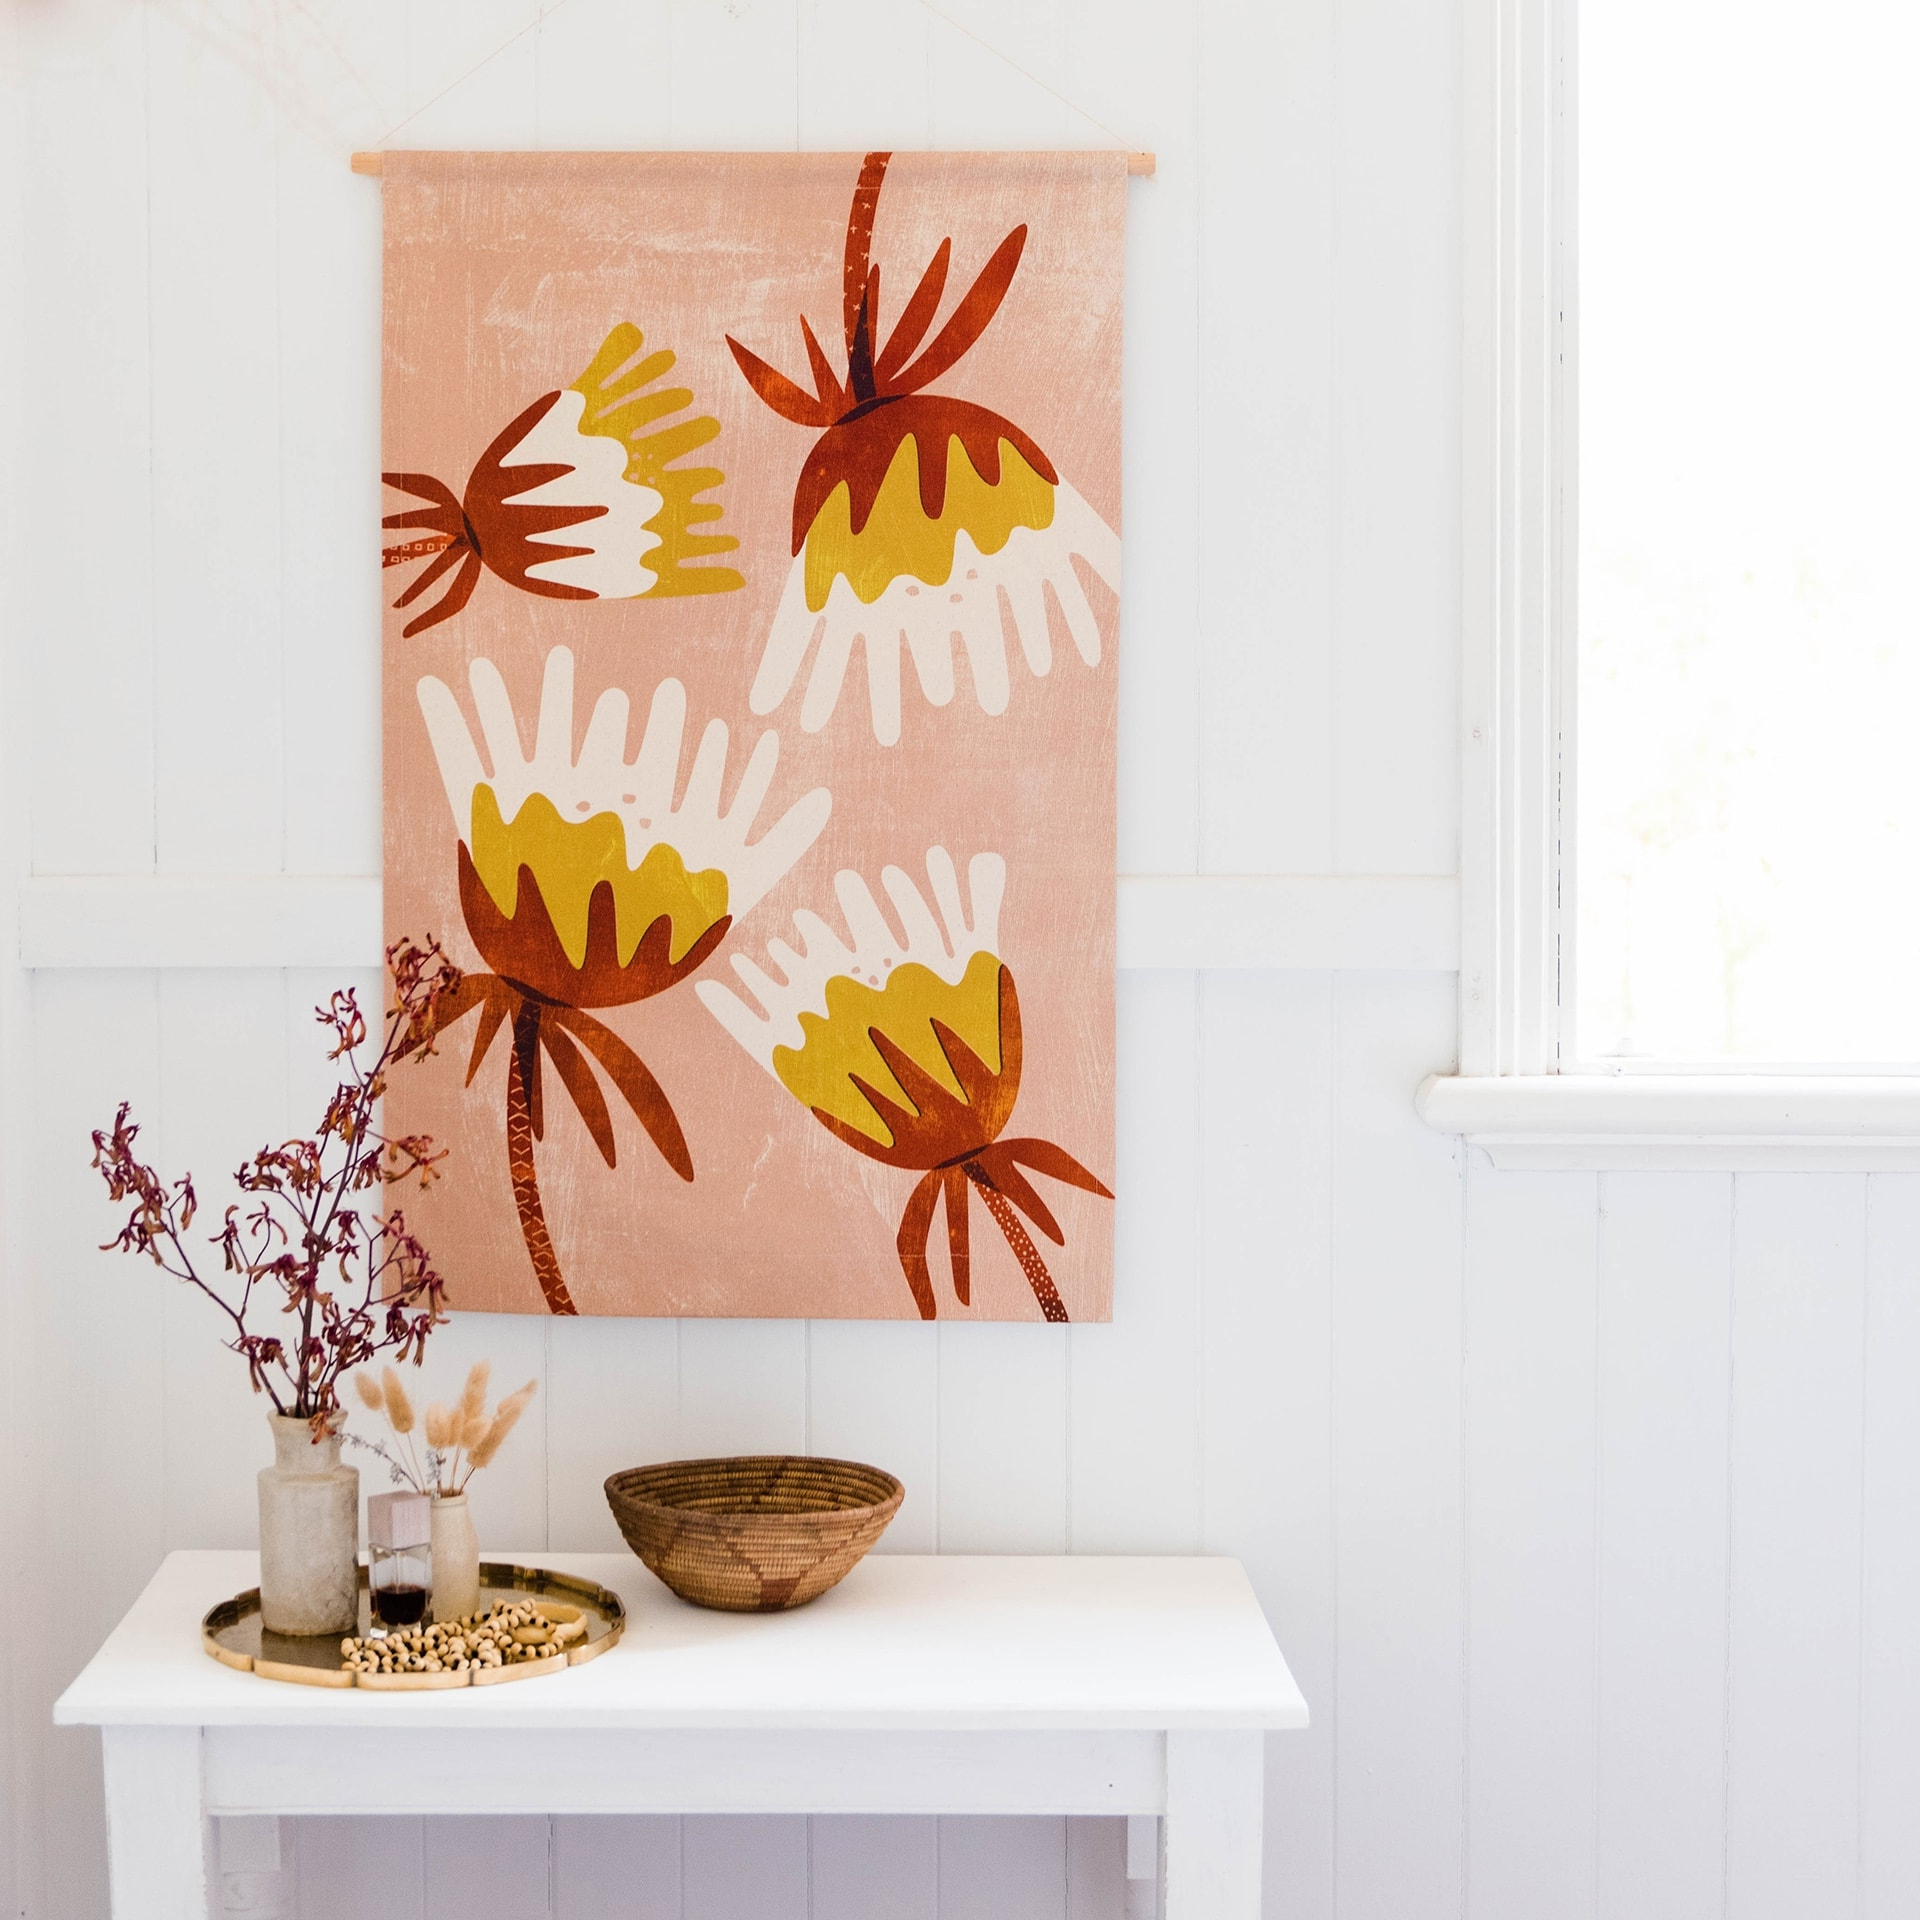 Blended Fabric Wall Hangings Regarding Fashionable Fabric Wall Hangings Trend & Where To Shop It – Tlc Interiors (View 8 of 20)